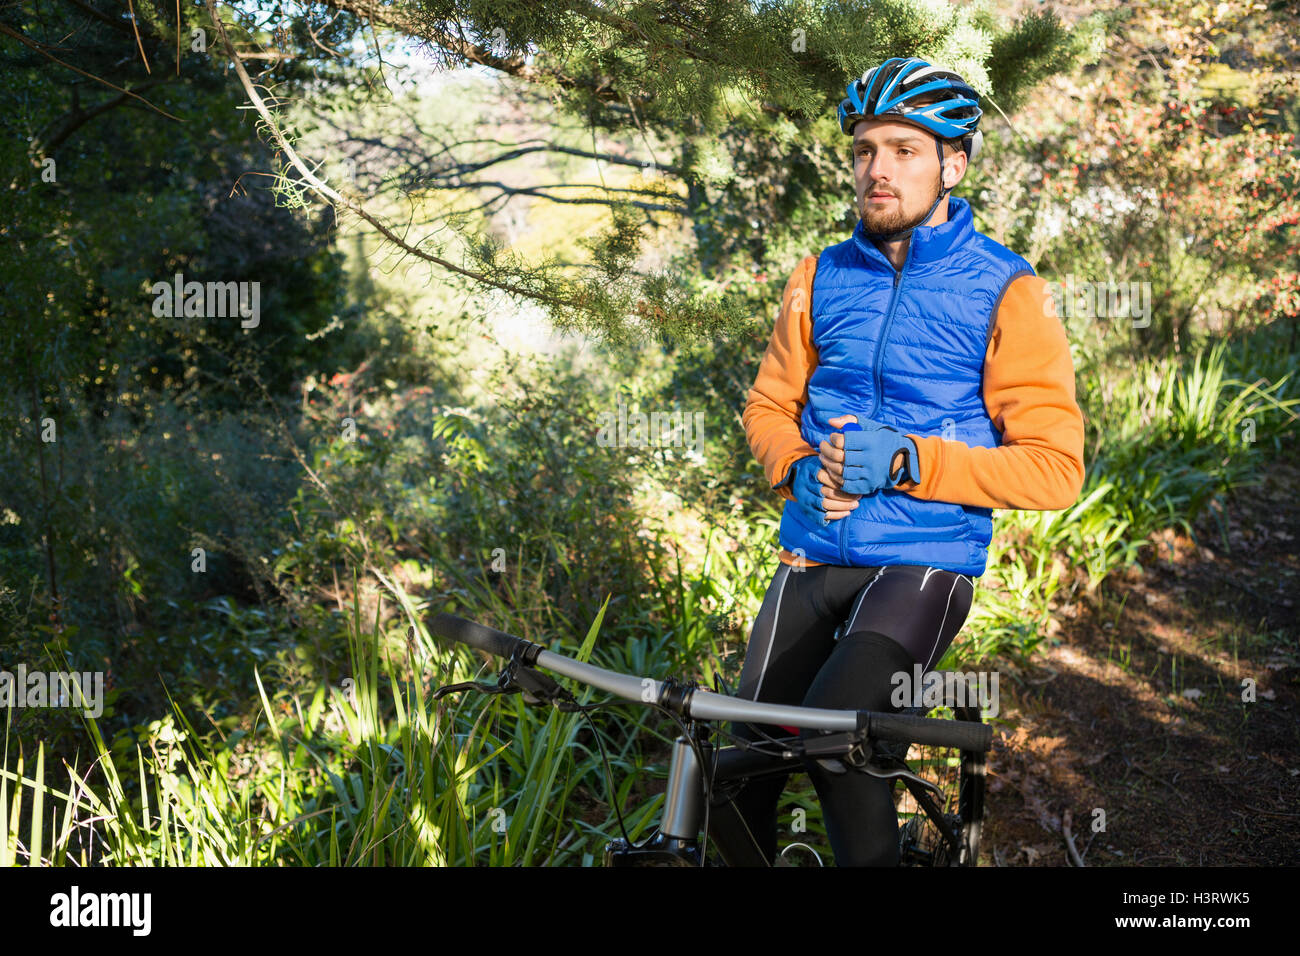 Male mountain holding water bottle standing with bicycle - Stock Image